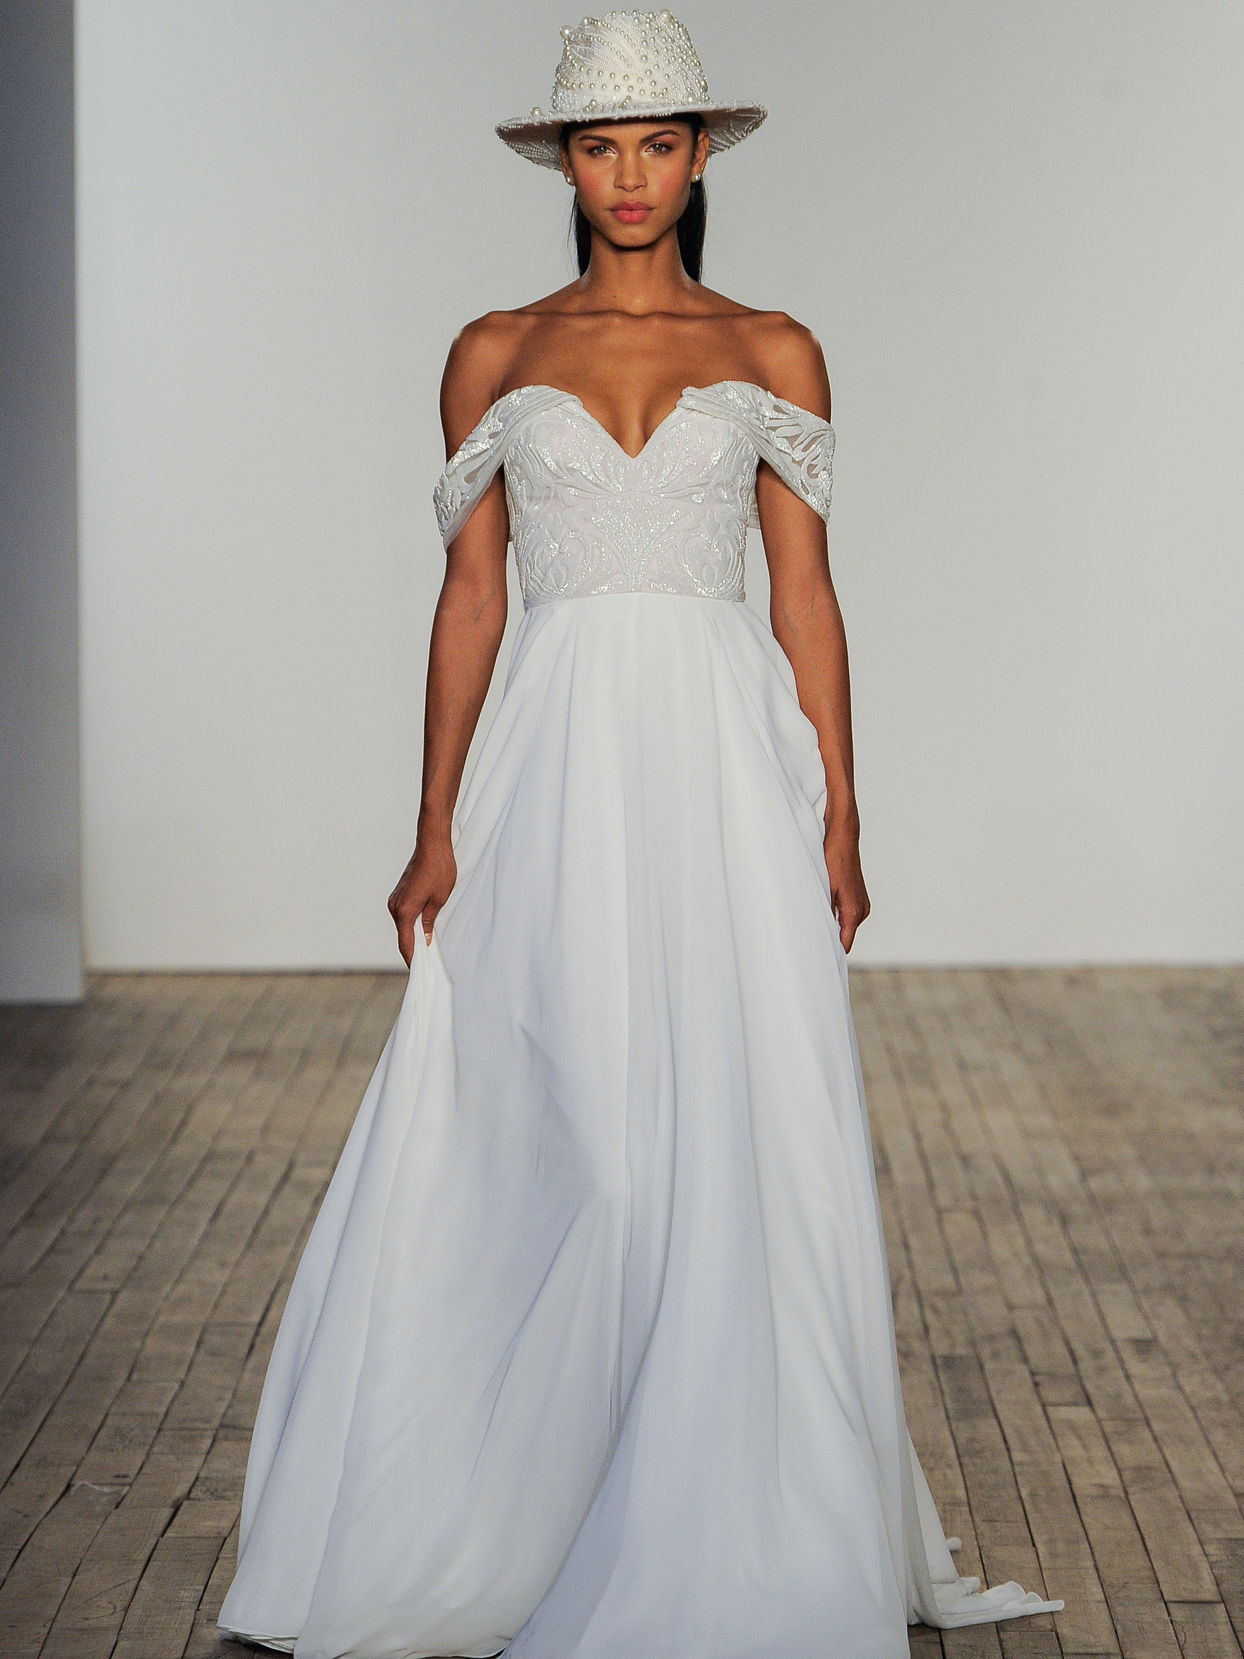 Hayley Paige off-the-shoulder chiffon a-line wedding dress fall 2020